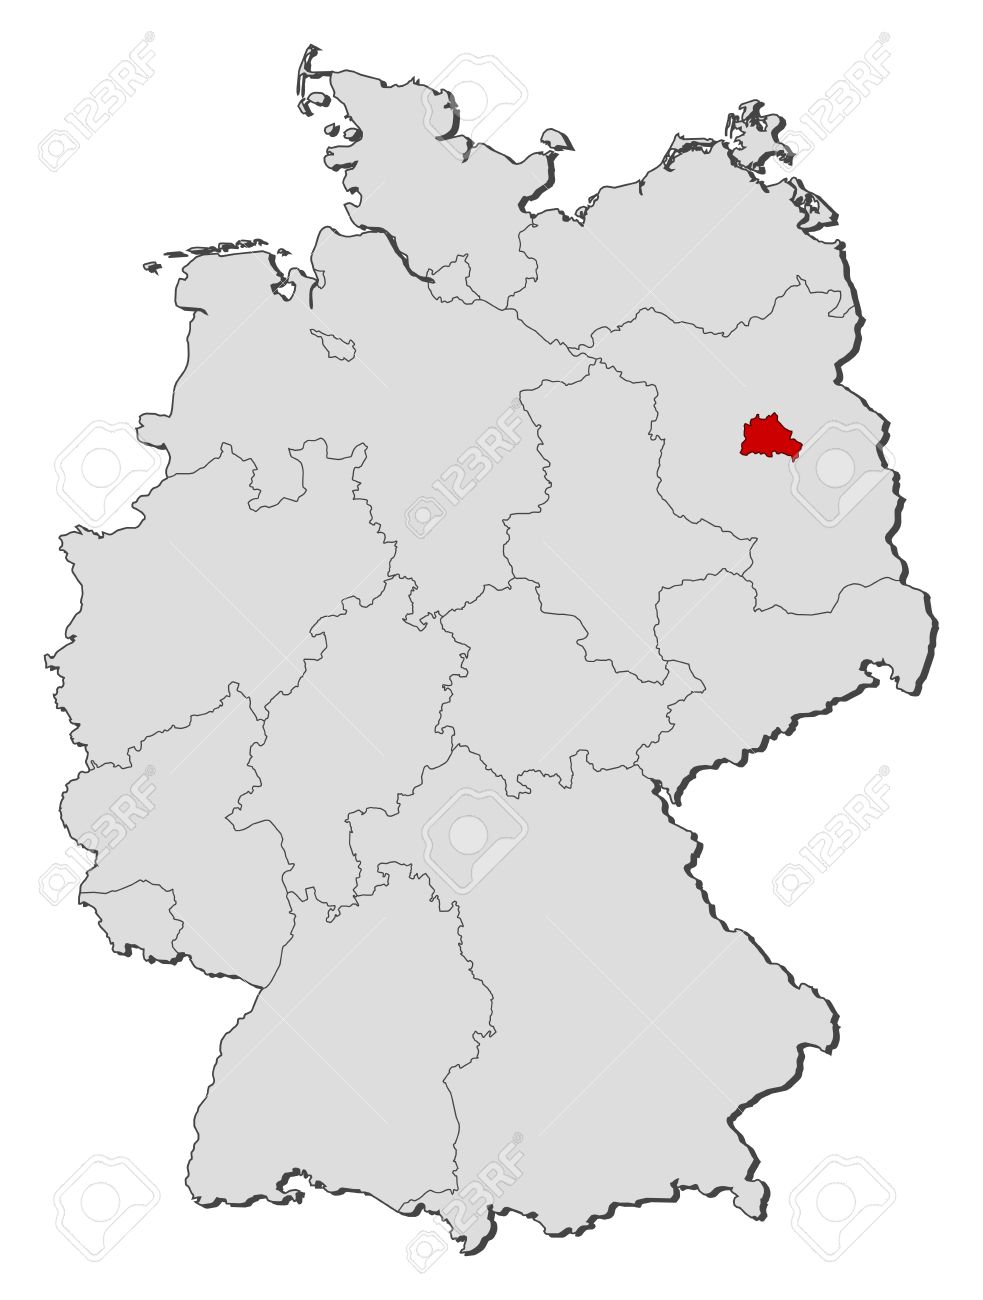 Berlin On Map Of Germany.Political Map Of Germany With The Several States Where Berlin